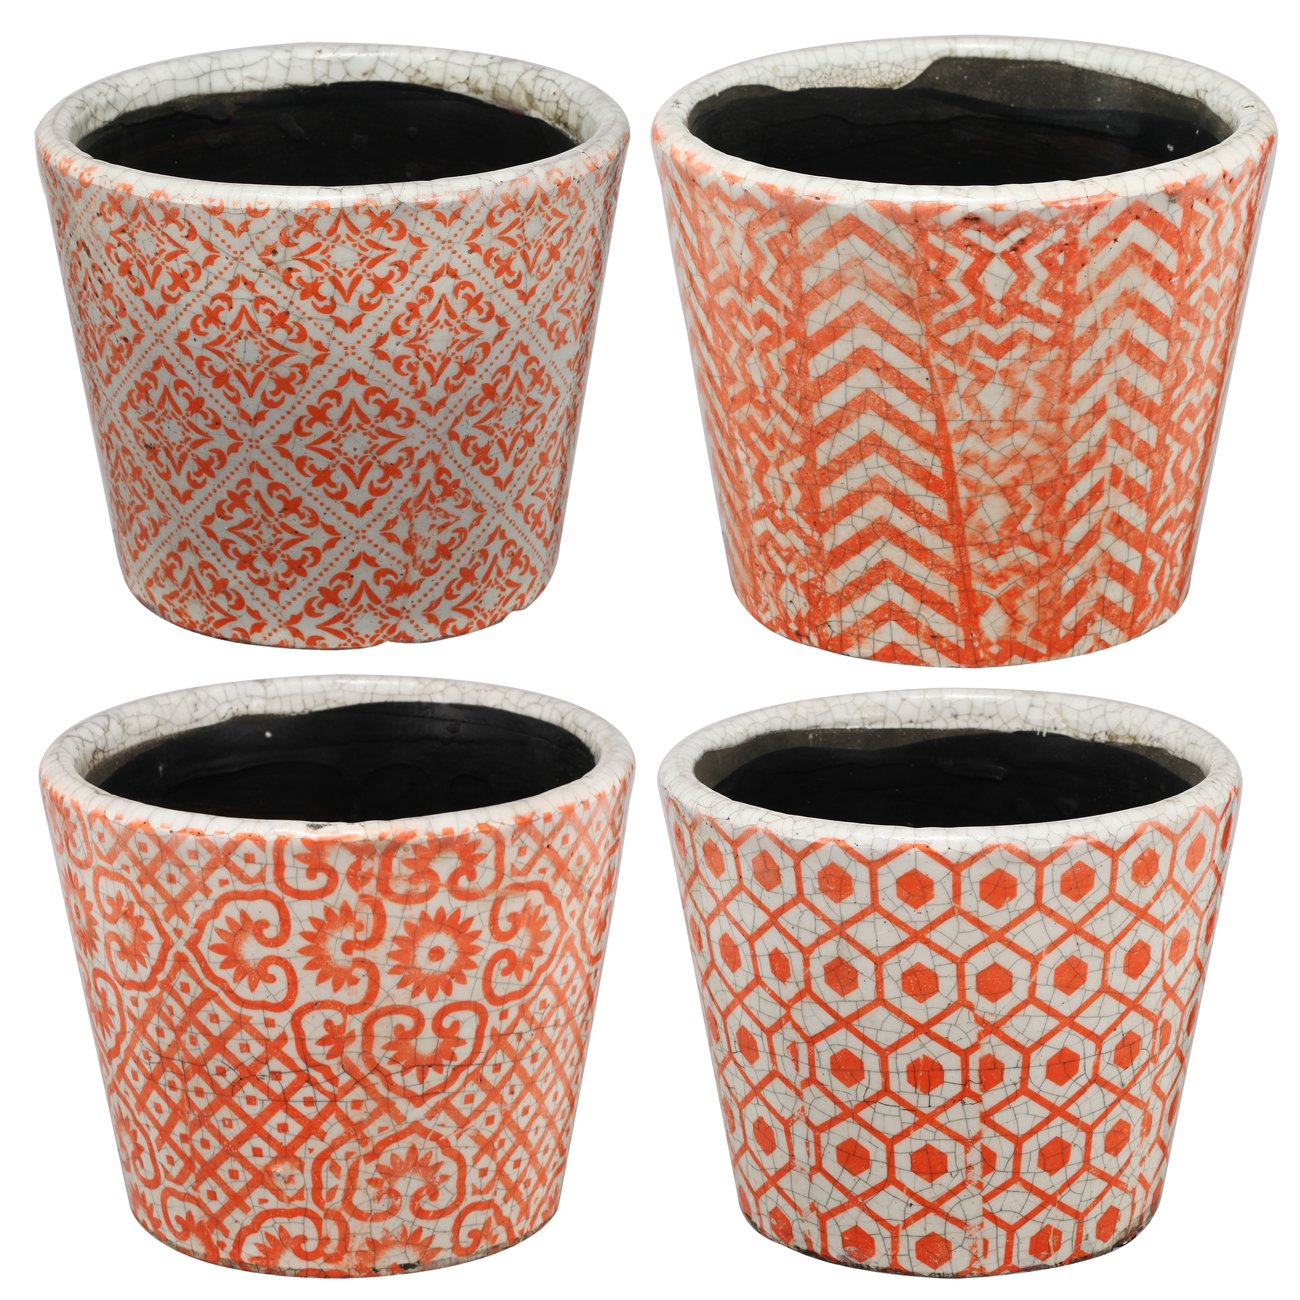 Bailey Terra Cotta Planter Set